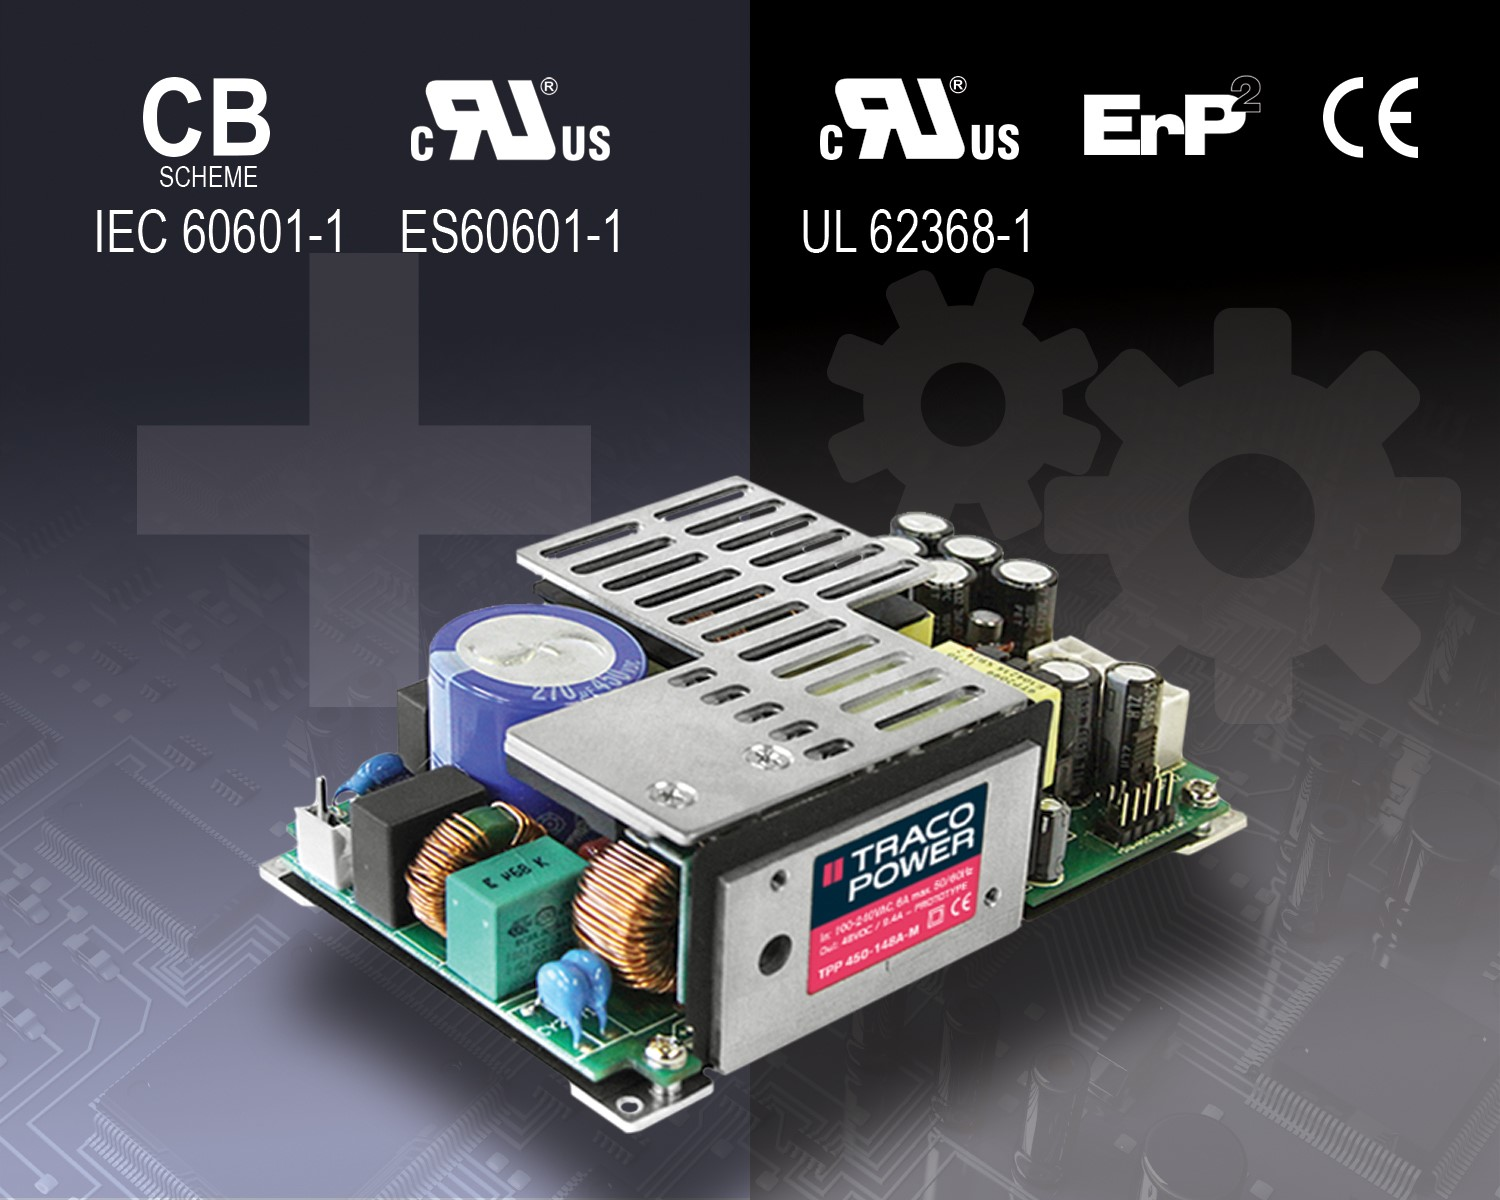 TRACO POWER releases TPP 450A series of 450 watt power supplies